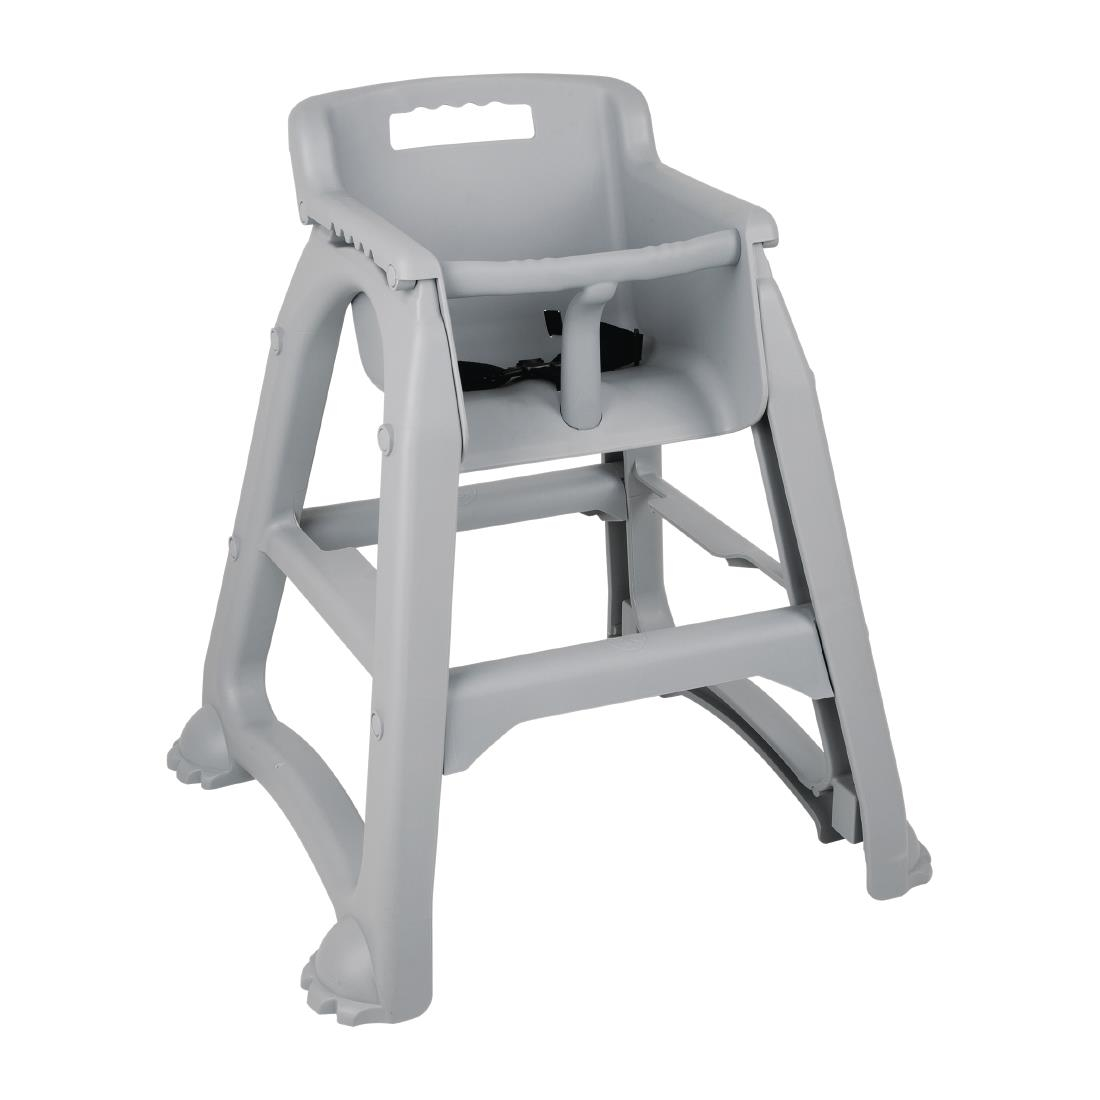 Bolero Plastic High Chair